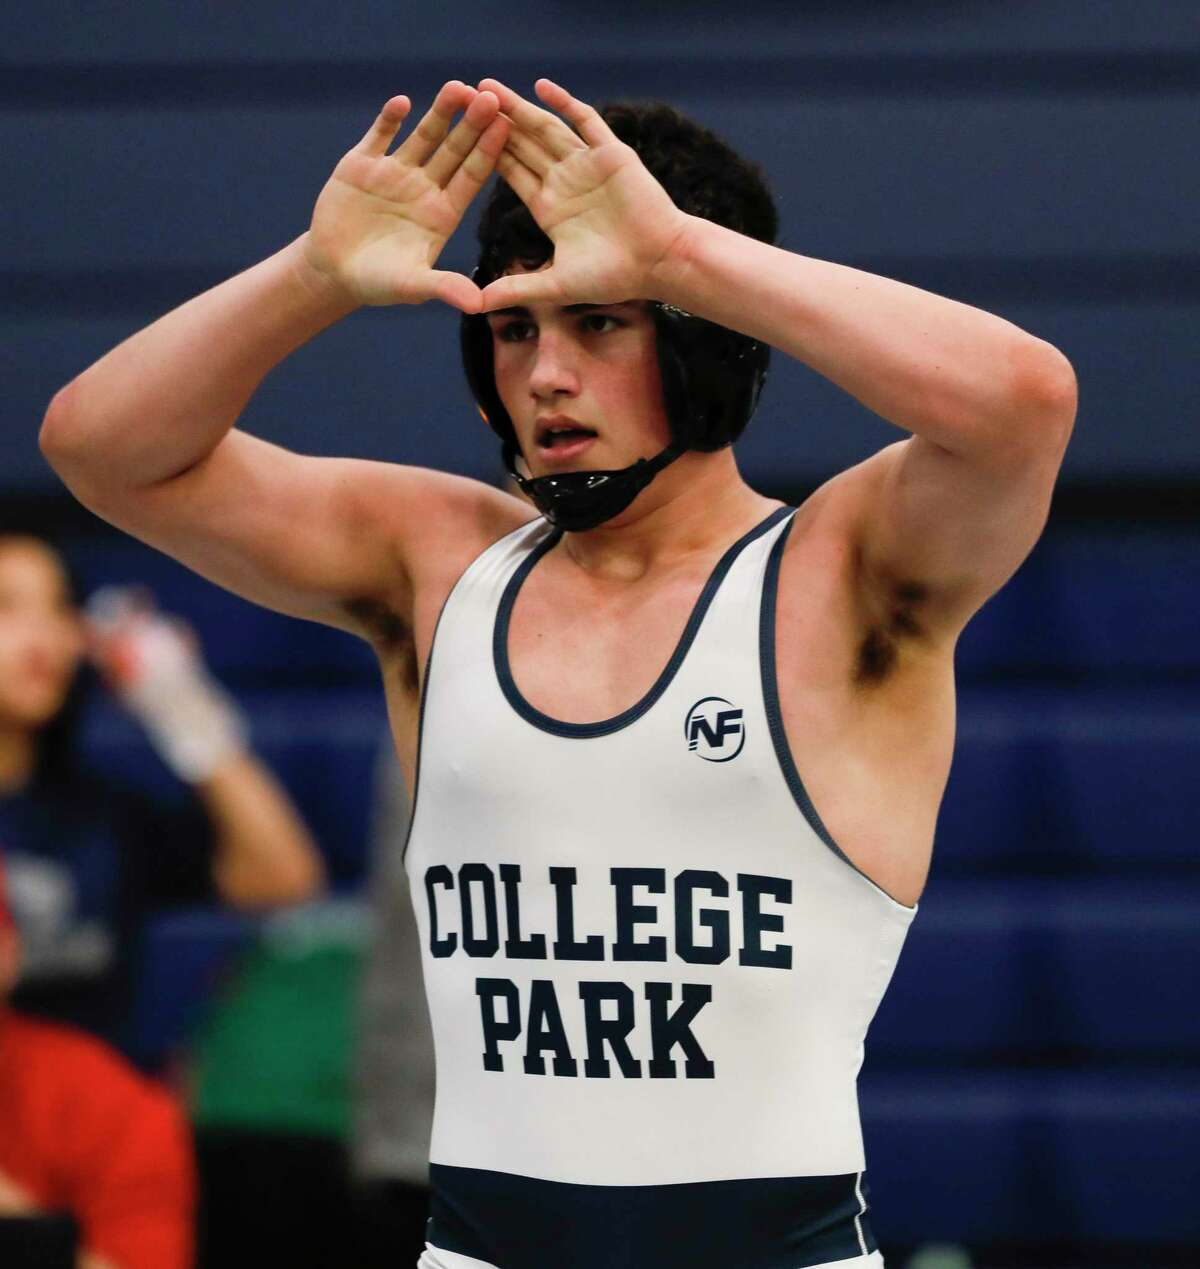 Juan Grange of College Park signals for position against Eli Sheeren of Klein in a 182-pound championship bout during the District 8-6A wrestling championships at Bryan High School, Thursday, Feb. 6, 2020, in Bryan.